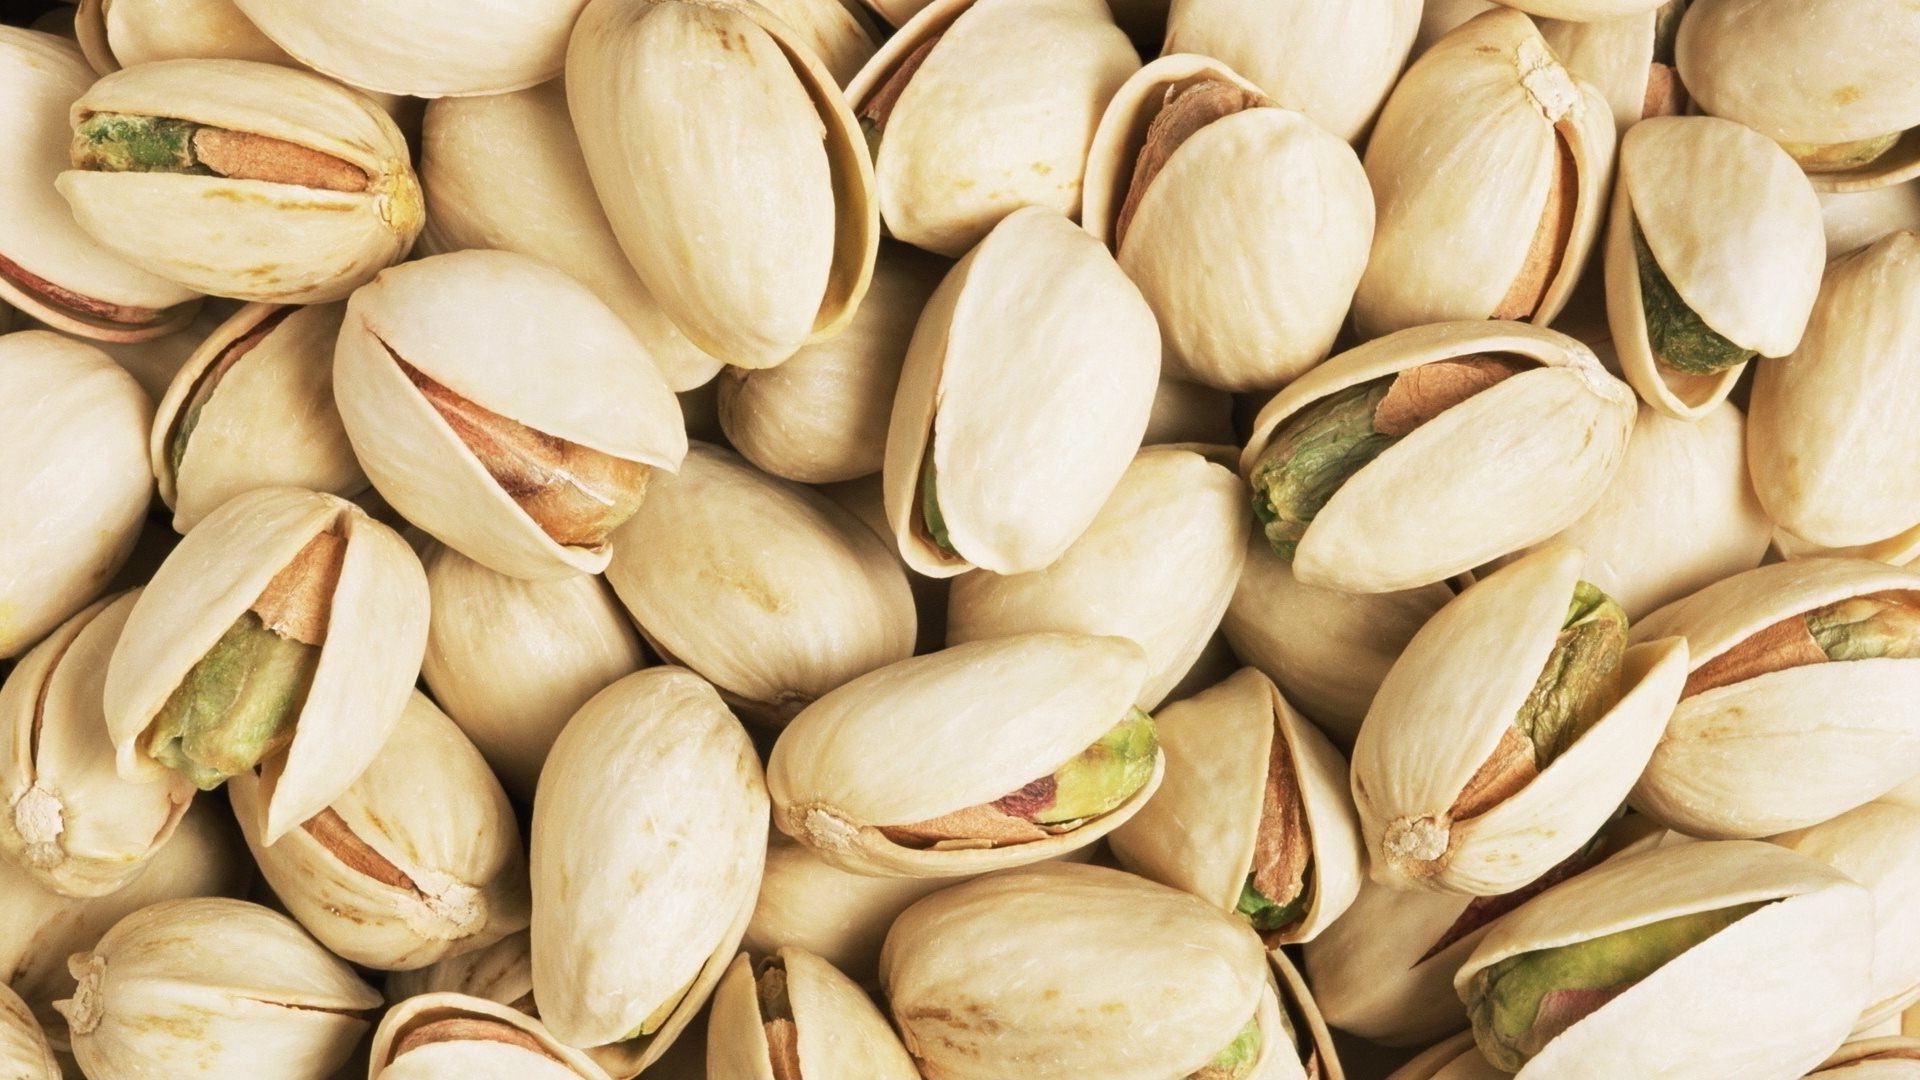 pistachio nuts desktop hd wallpaper 52118